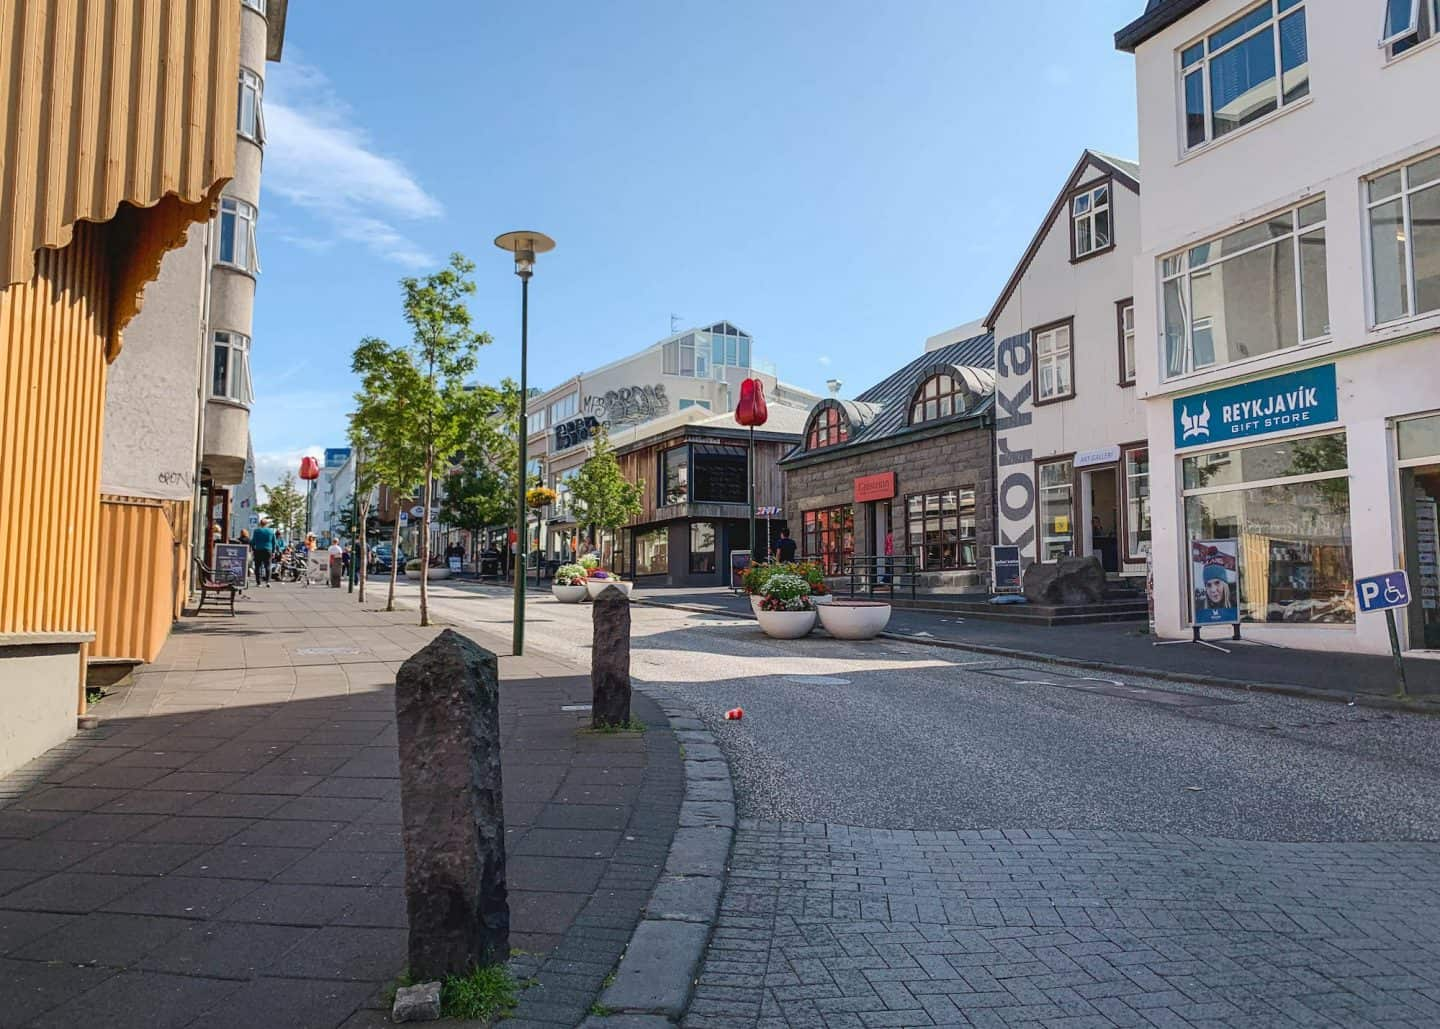 Things to do in Downtown Reykjavik | Diary of a Toronto Girl, a Canadian lifestyle blog